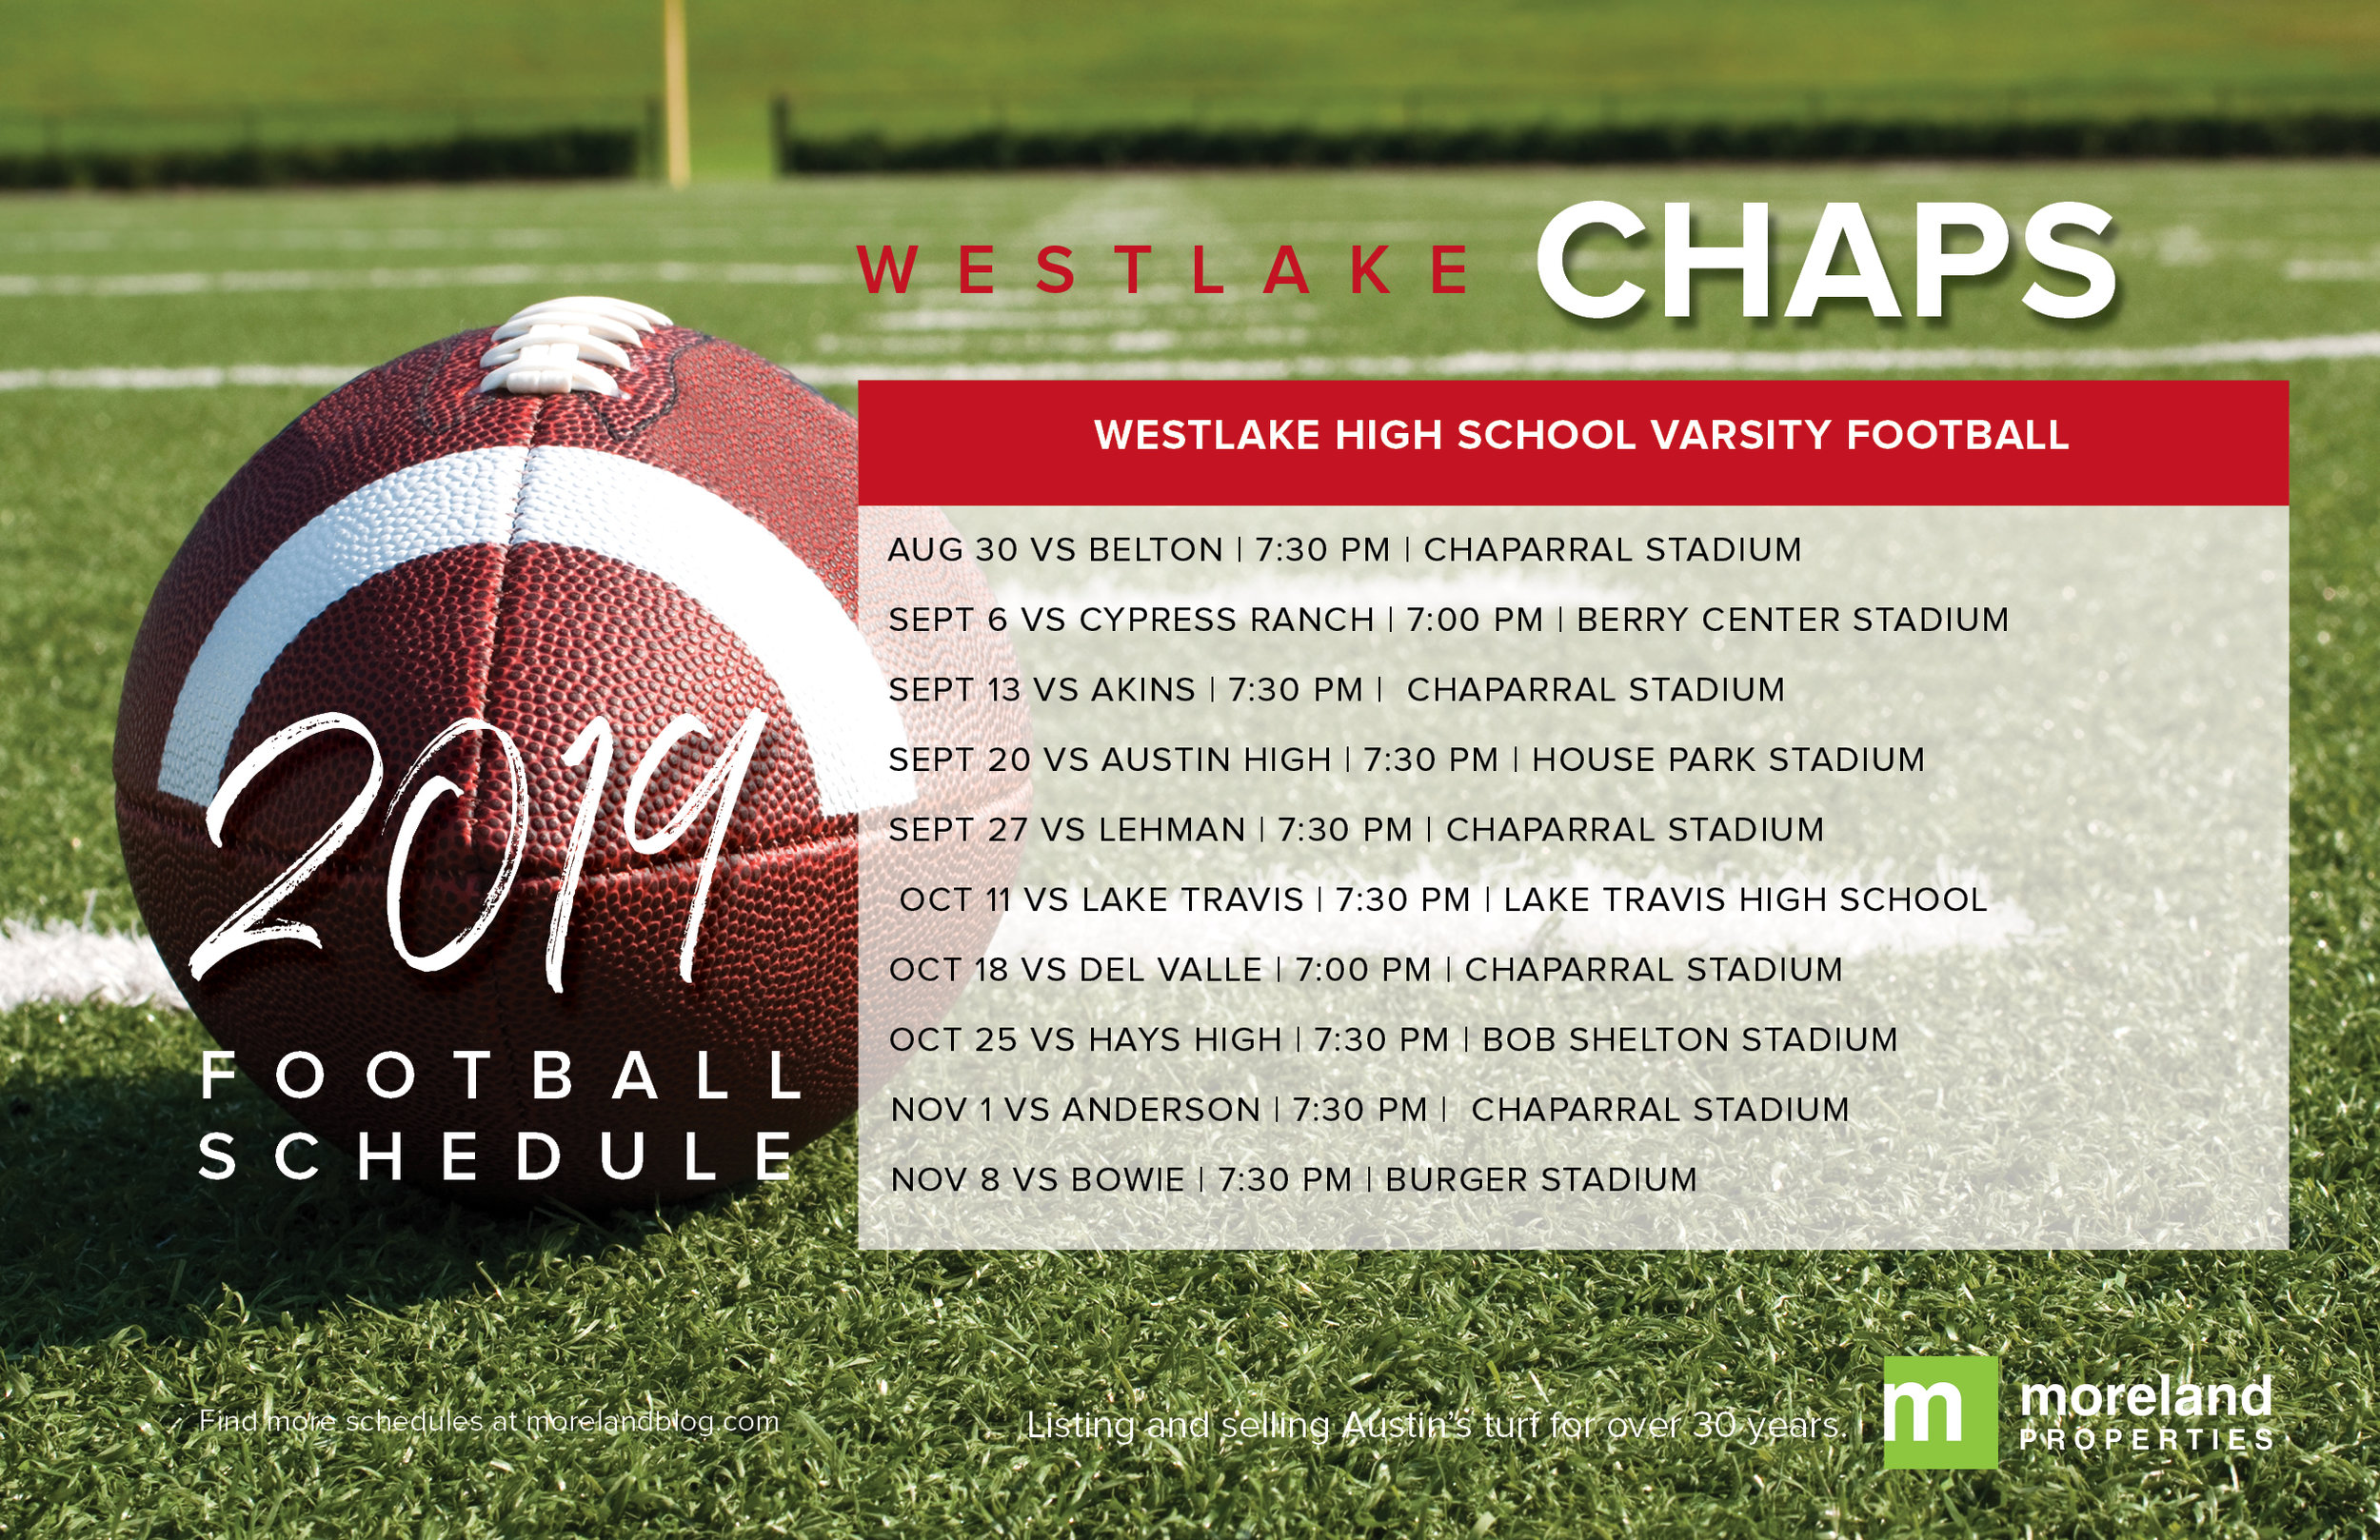 Westlake Chaps 2019 Football Schedule